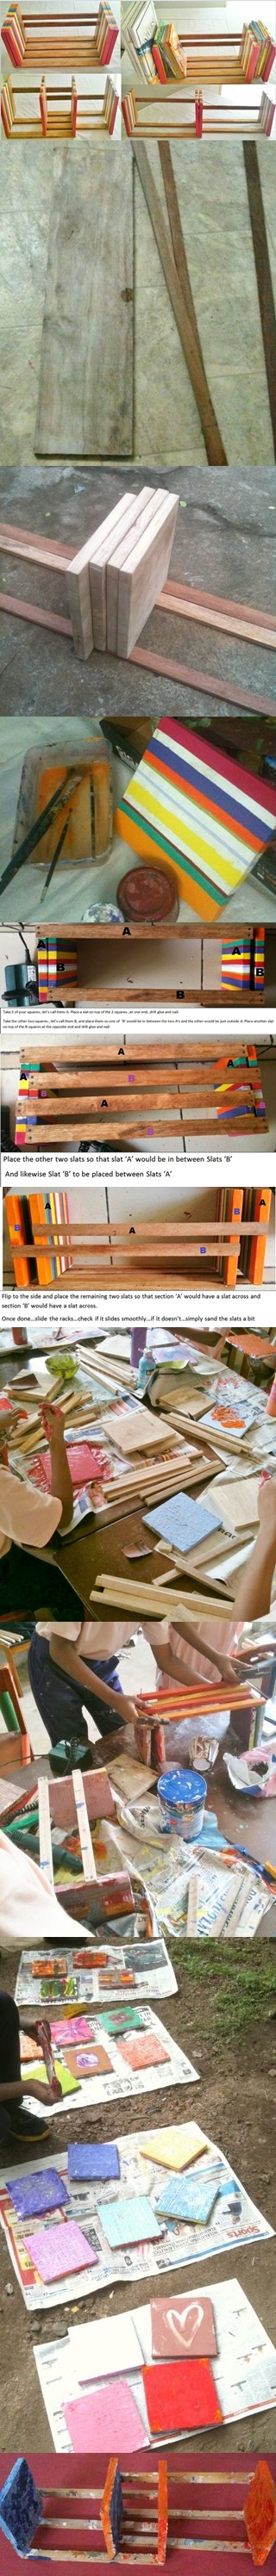 how to make your own adjustable table top book rack step by step DIY instructions